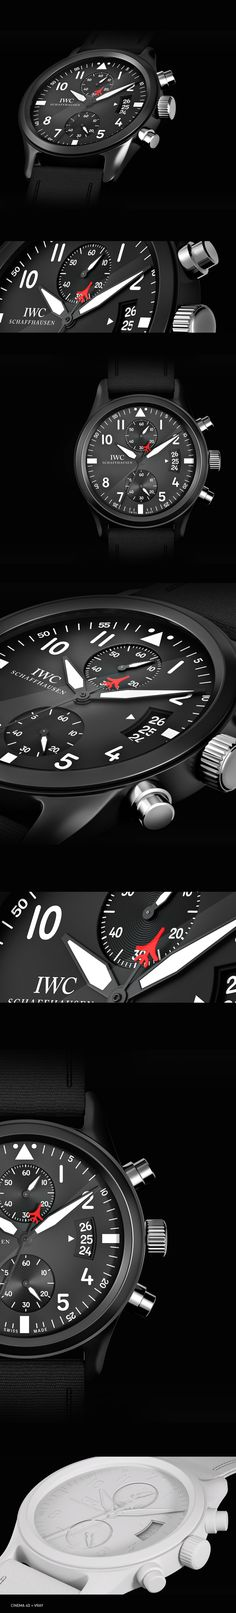 3D IWC Watch by Flavio Carvalho, via Behance